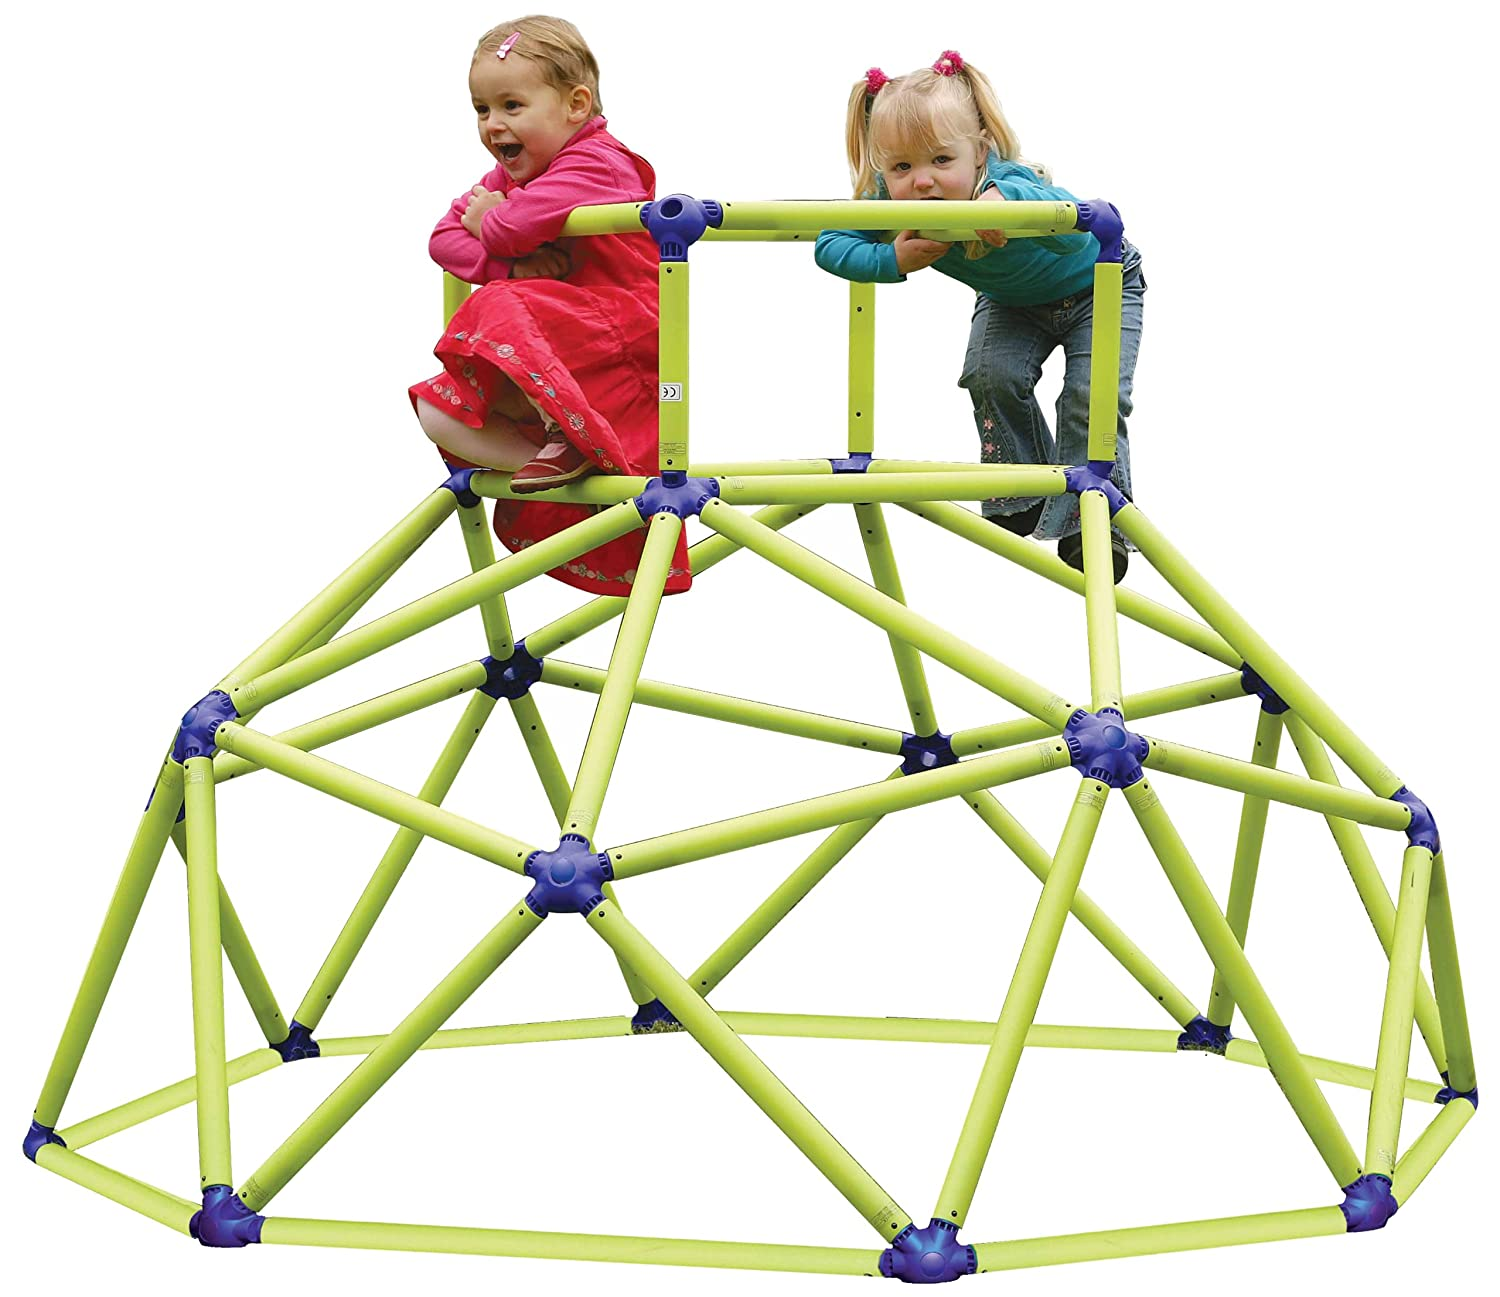 Monkey Bars Climbing Tower Eezy Peezy TM200